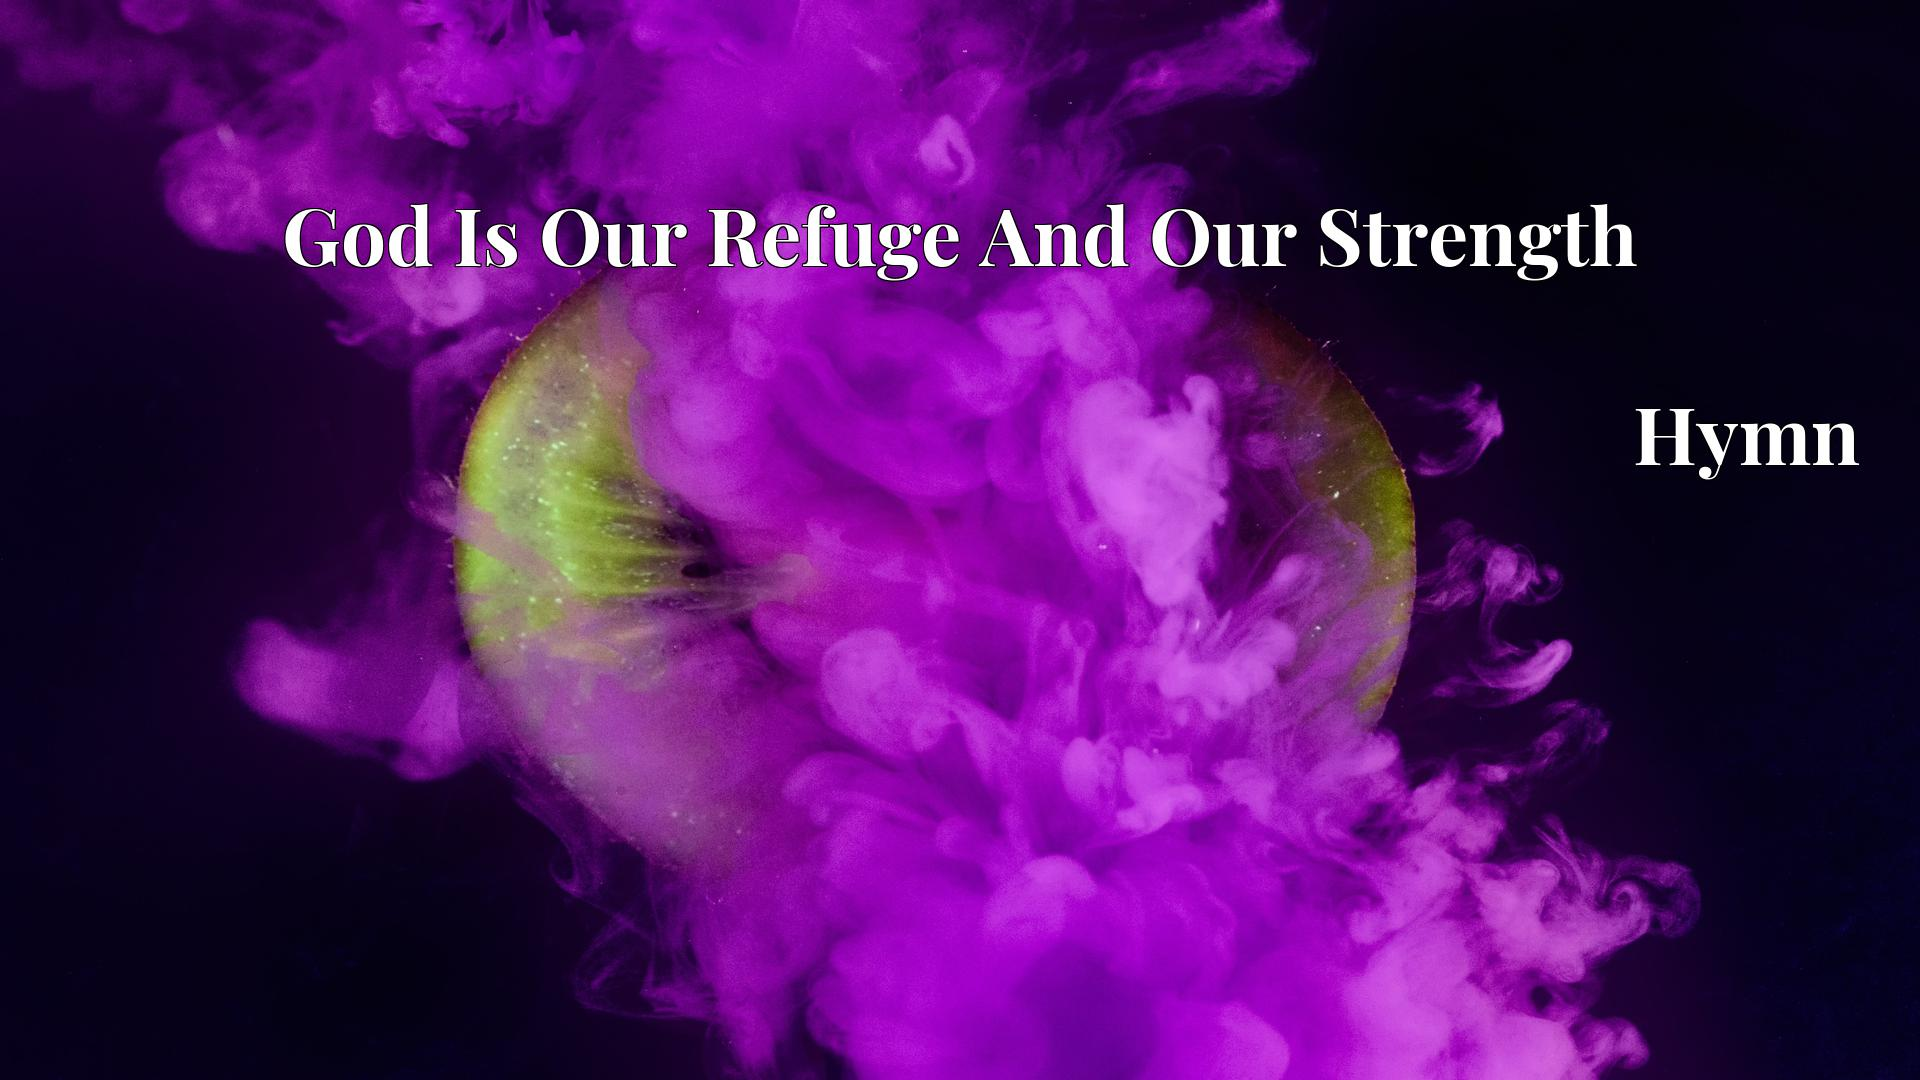 God Is Our Refuge And Our Strength - Hymn